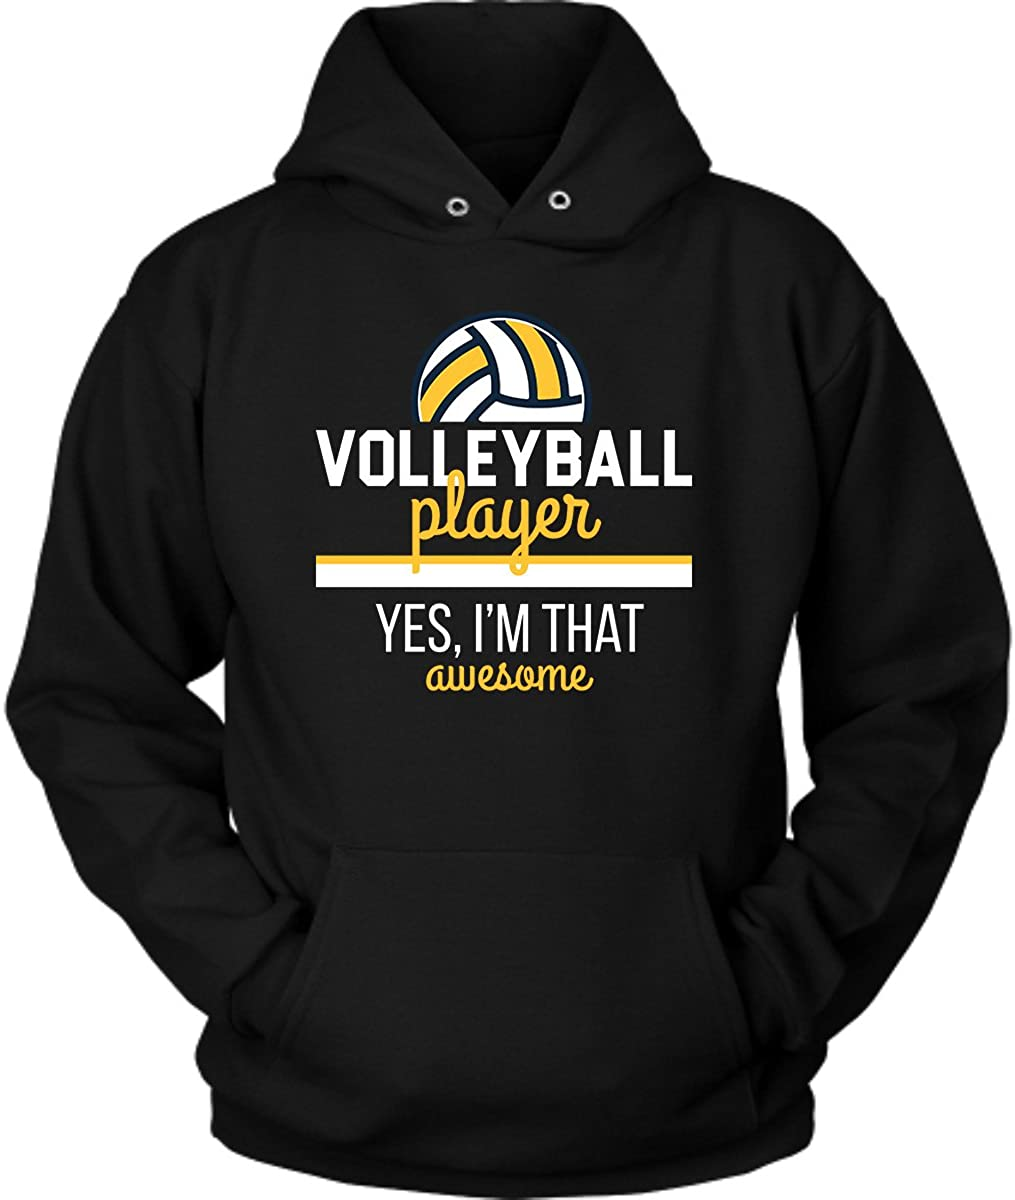 District Hoodies Volleyball Player Hoodie. Cute and Funny Gift Idea.